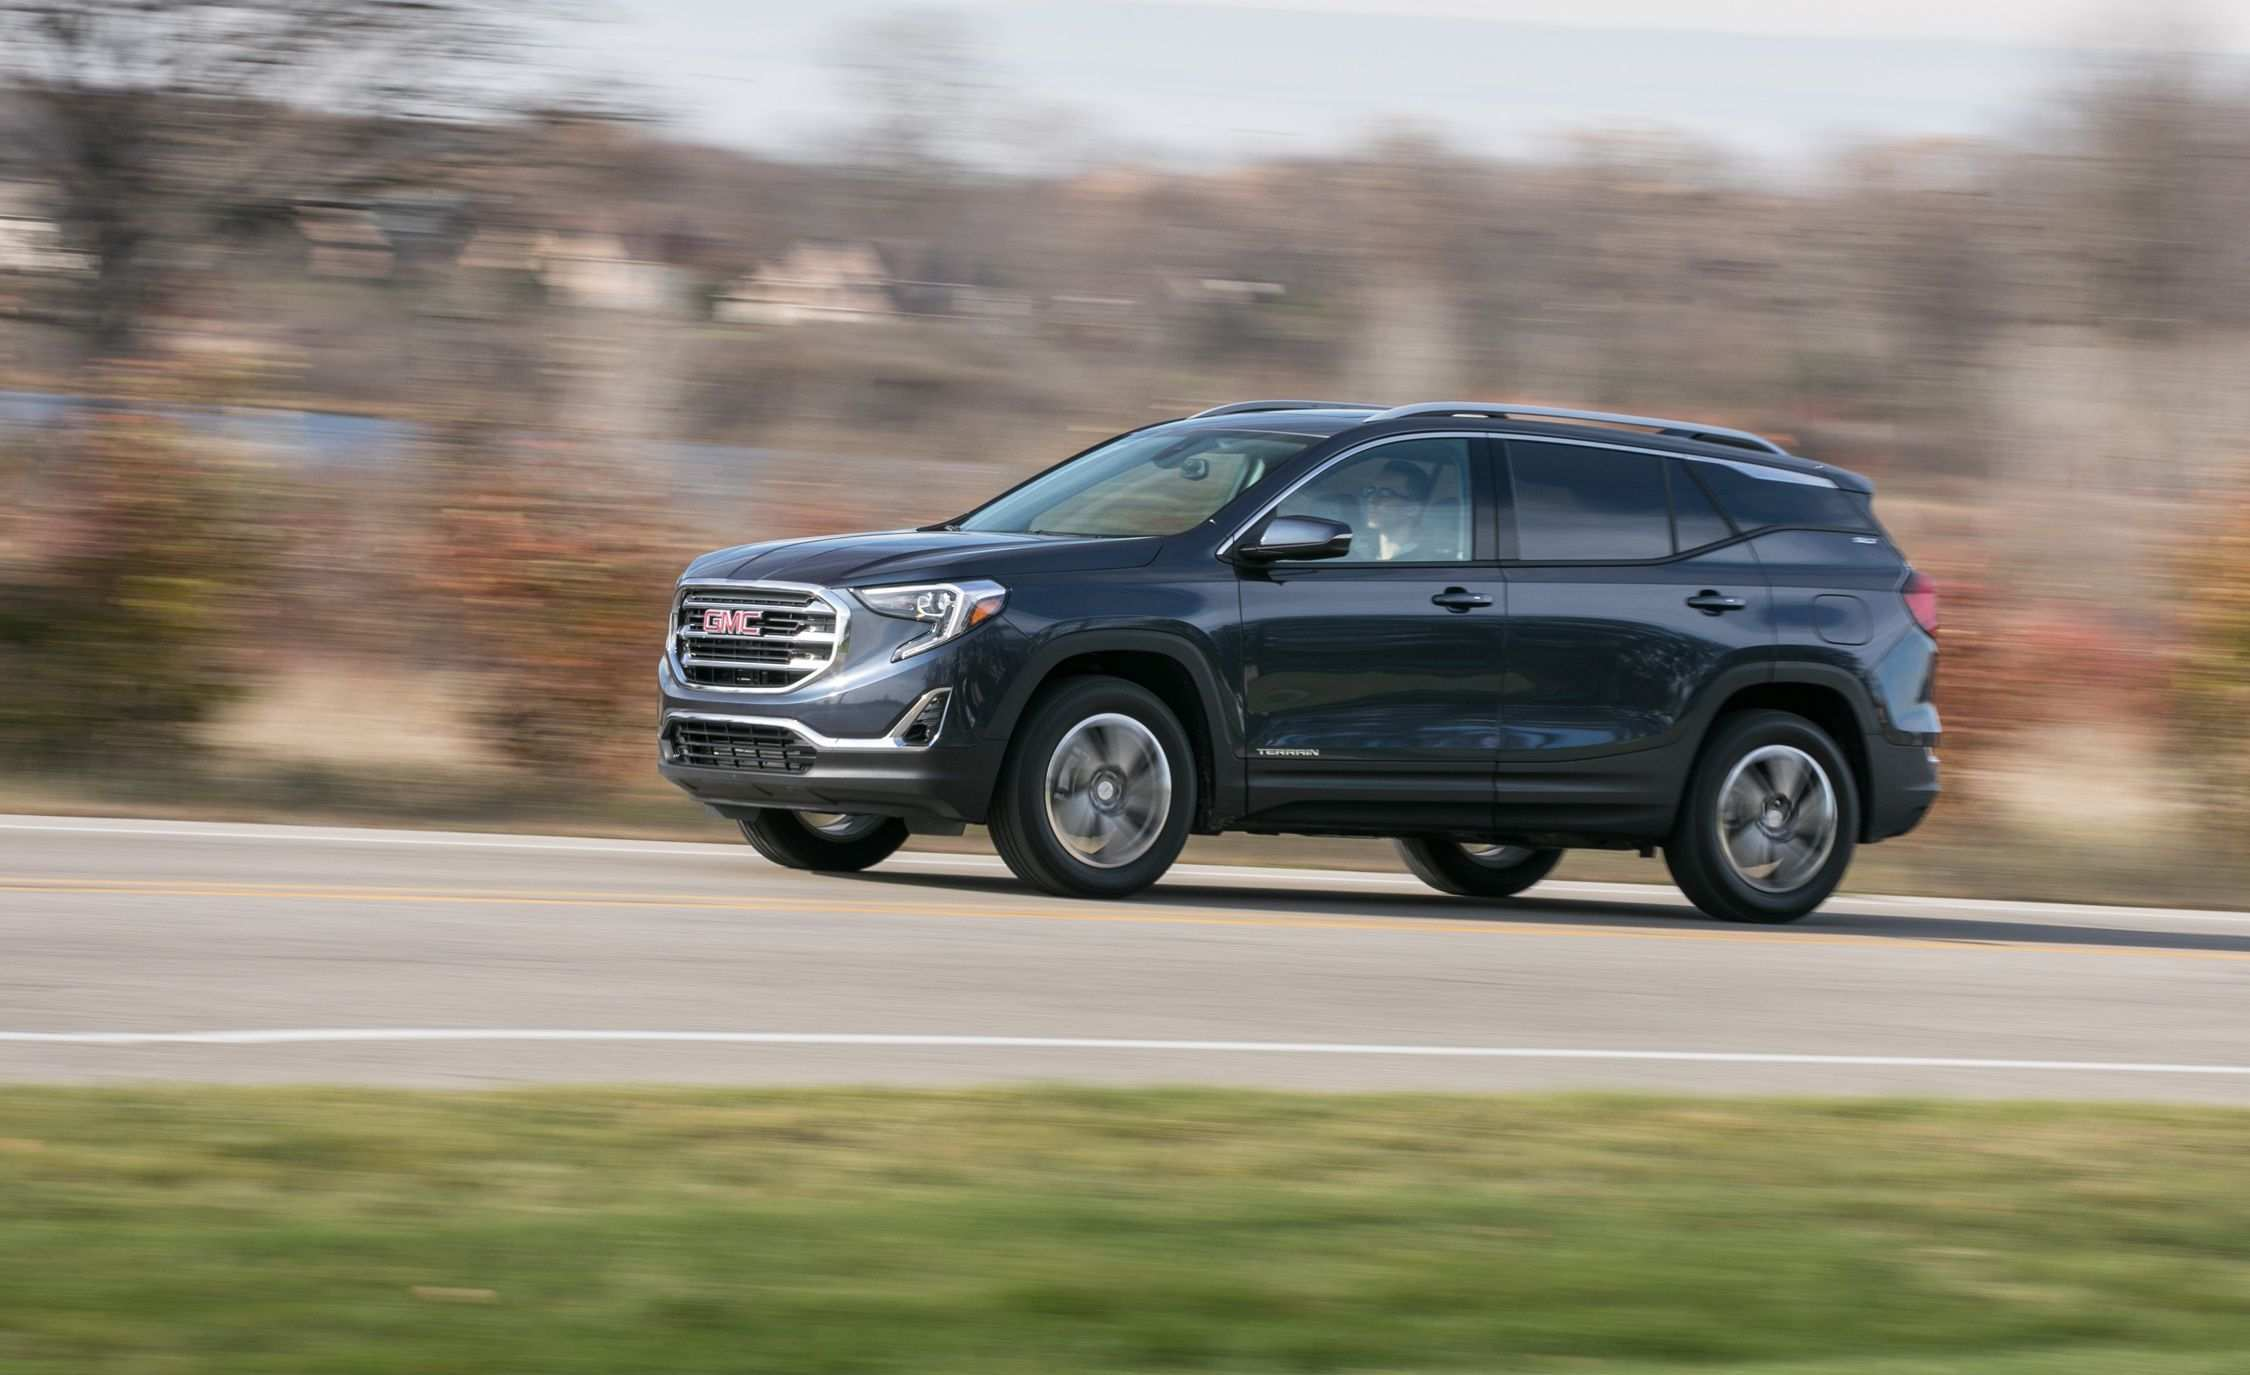 66 New 2020 BMW Terrain Gas Mileage New Review for 2020 BMW Terrain Gas Mileage